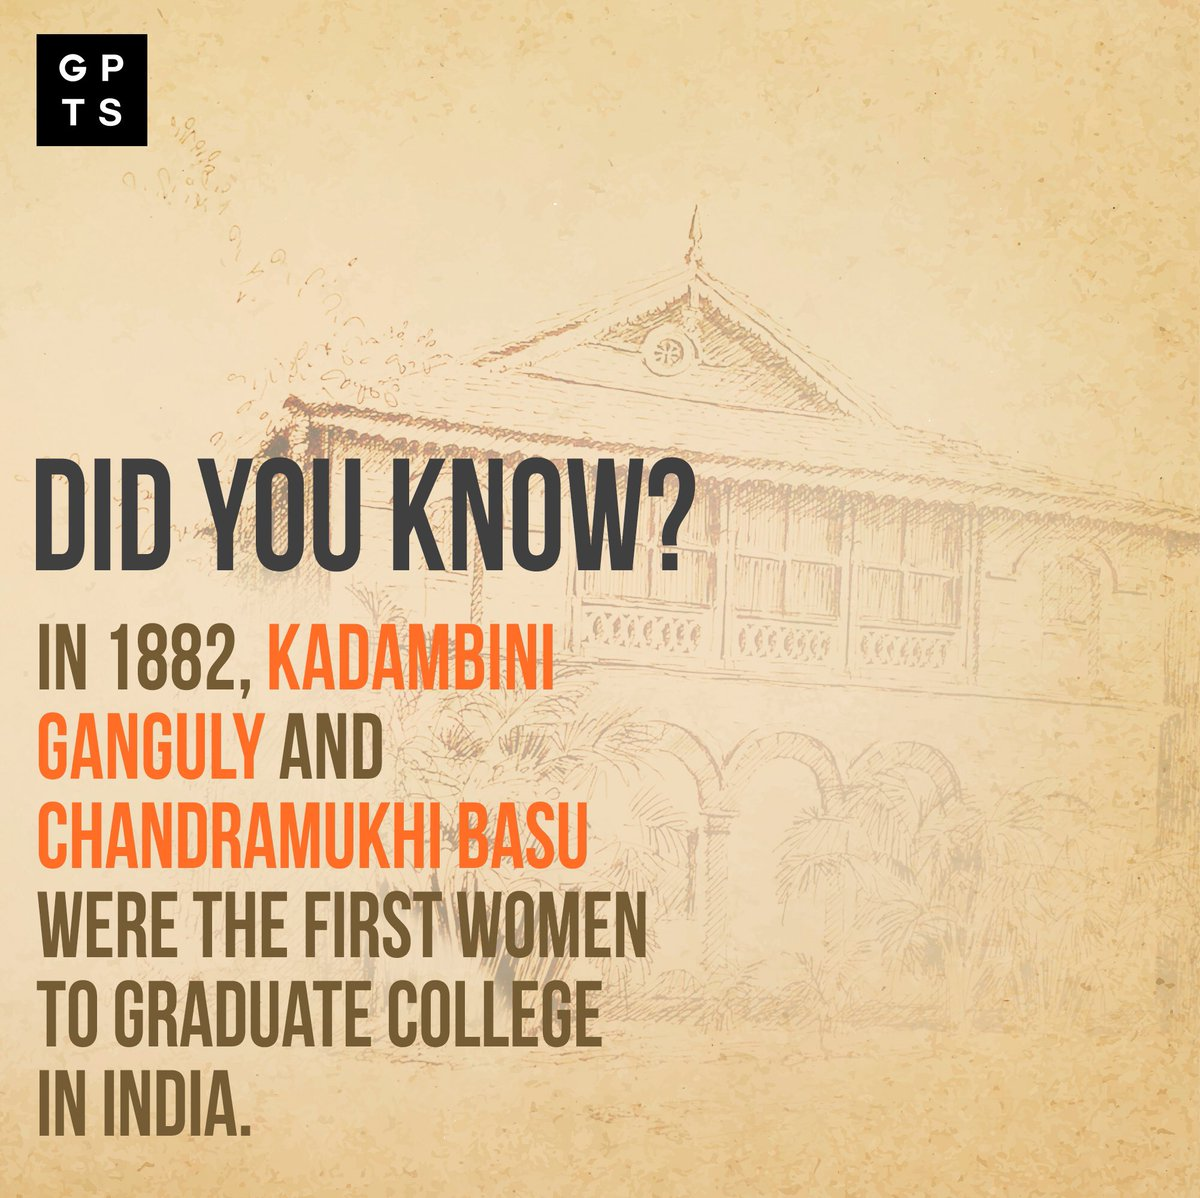 Let's take a look at these awesome women who fought so much to have access to education! Let's never take our emancipation for granted.  #didyouknowfacts #learning #neverstops #surgeon #principal #career #woman #freedom #education #proved #society #wrong #uplifted https://t.co/0bp1YczAT7